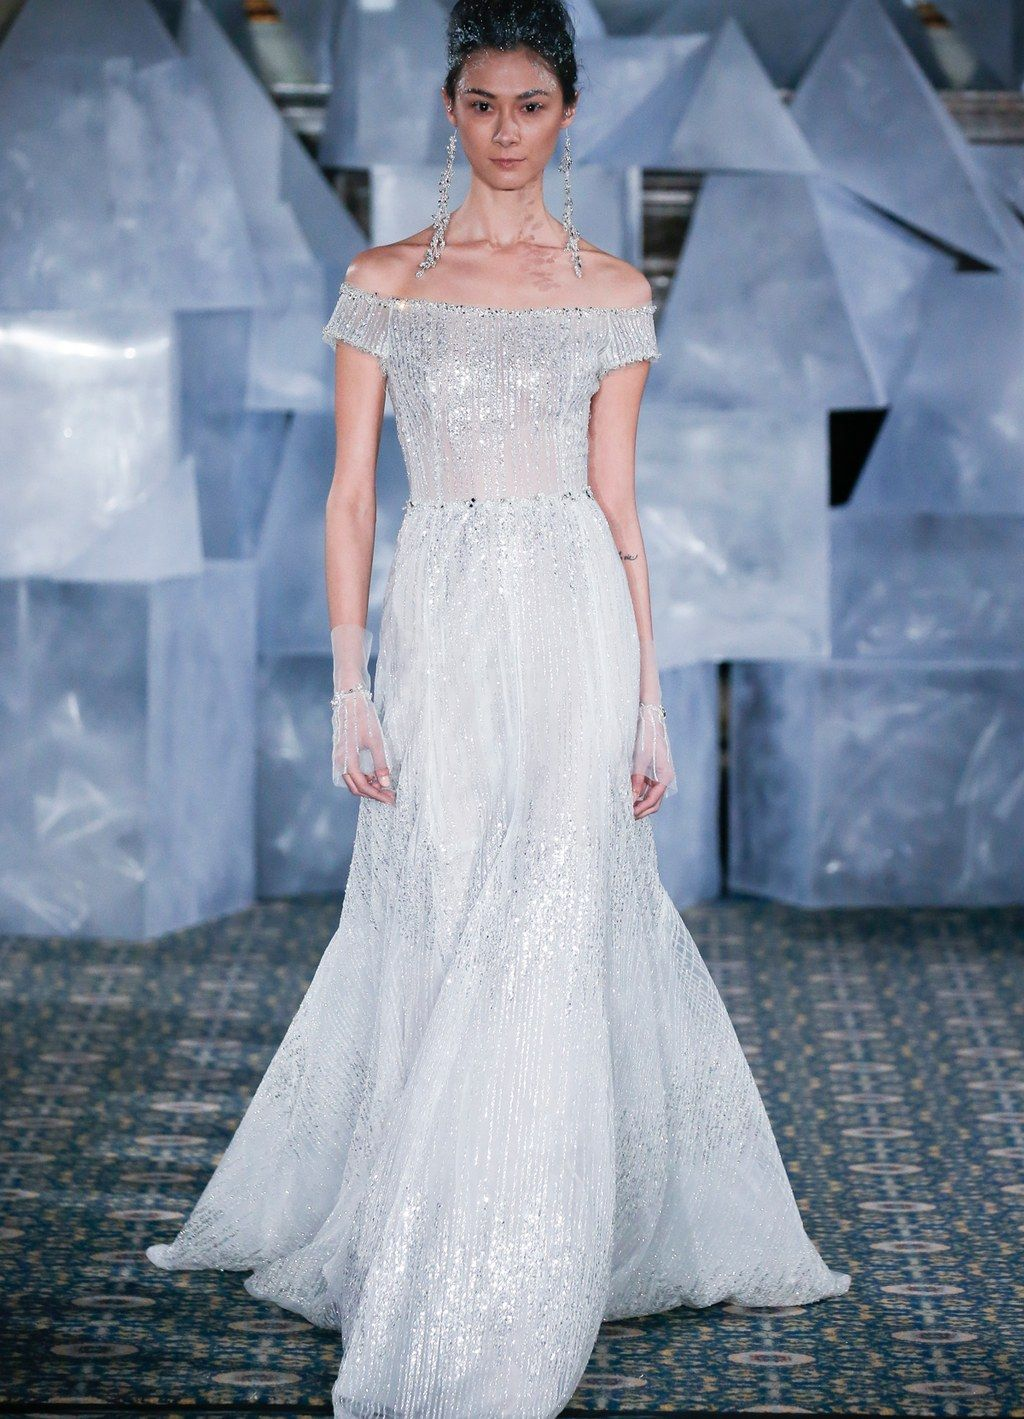 cd6a8c895 7 Bridal Fashion Trends That Should Be on Your Radar di 2019 ...